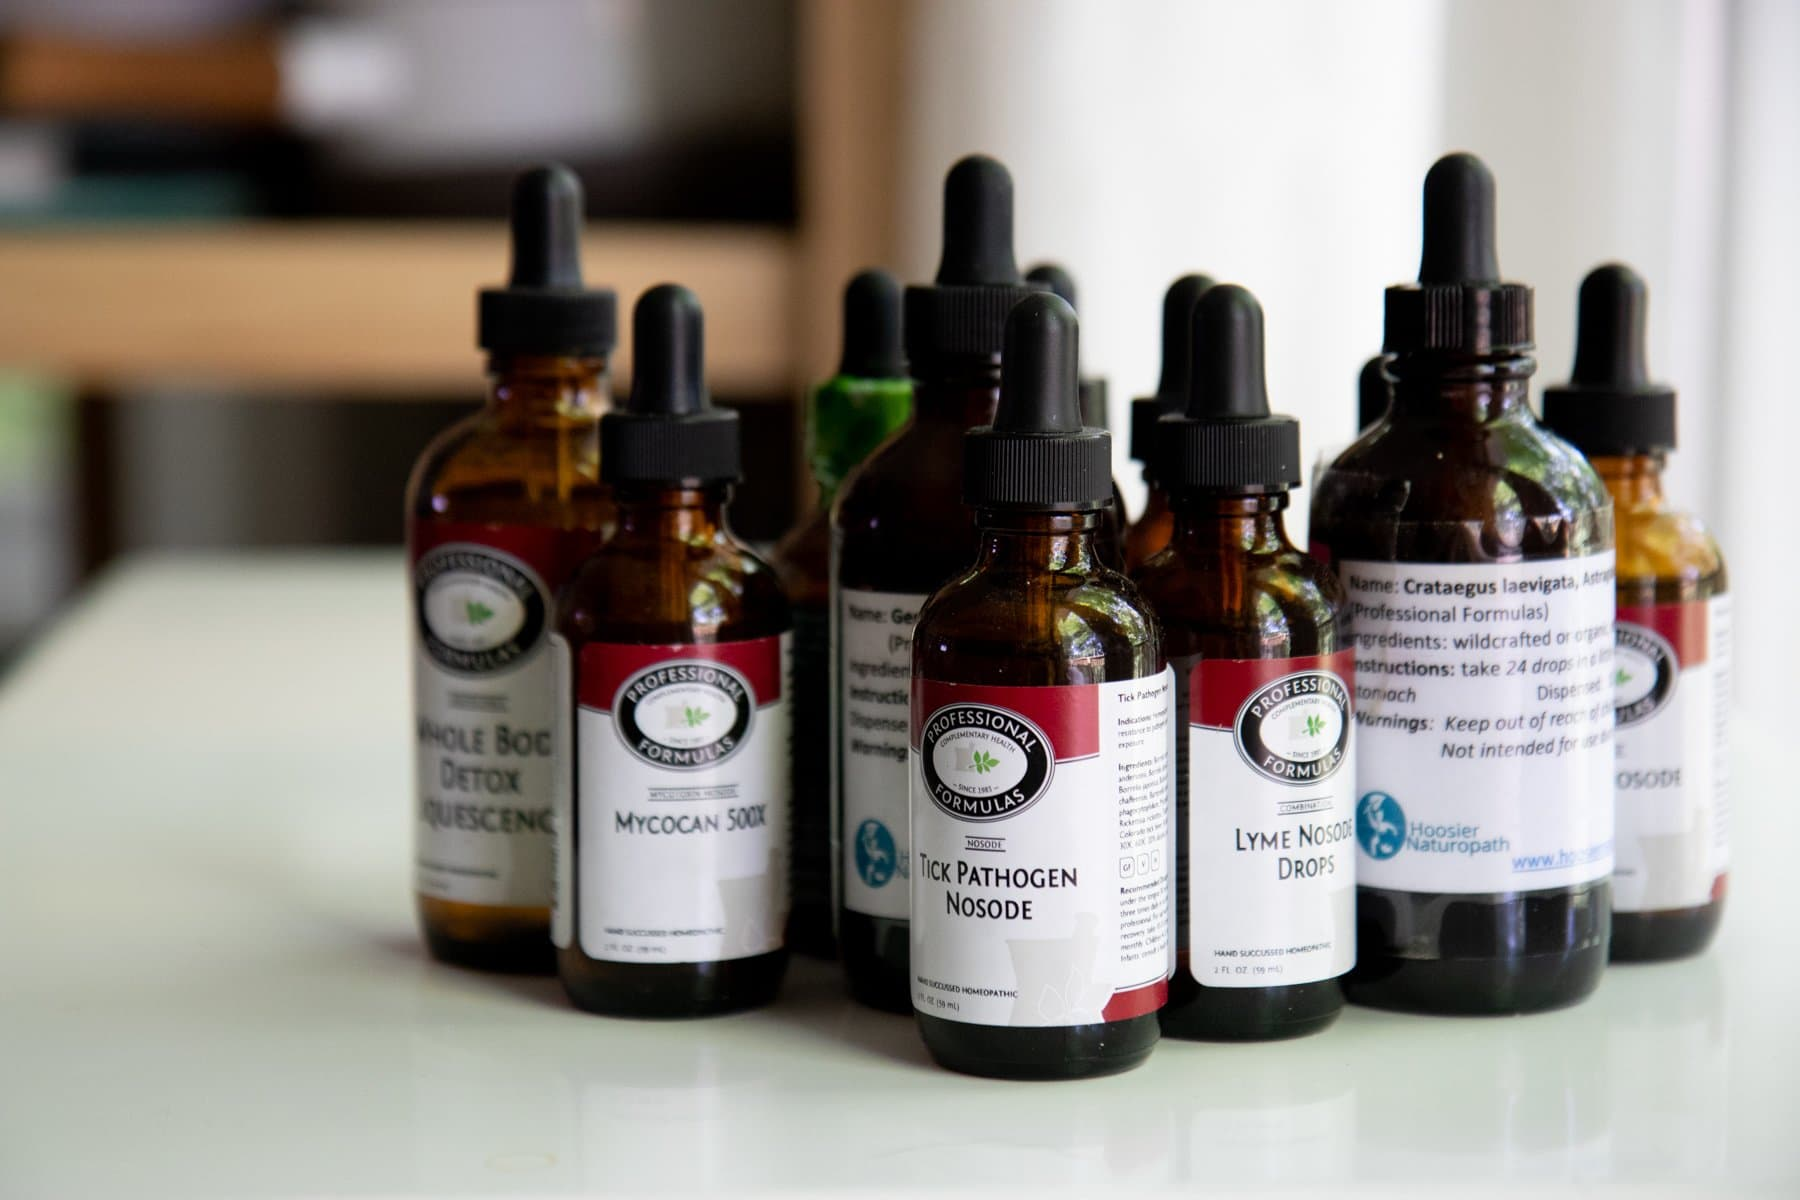 Cluster of eyedropper bottles containing herbal treatments for Lyme Disease